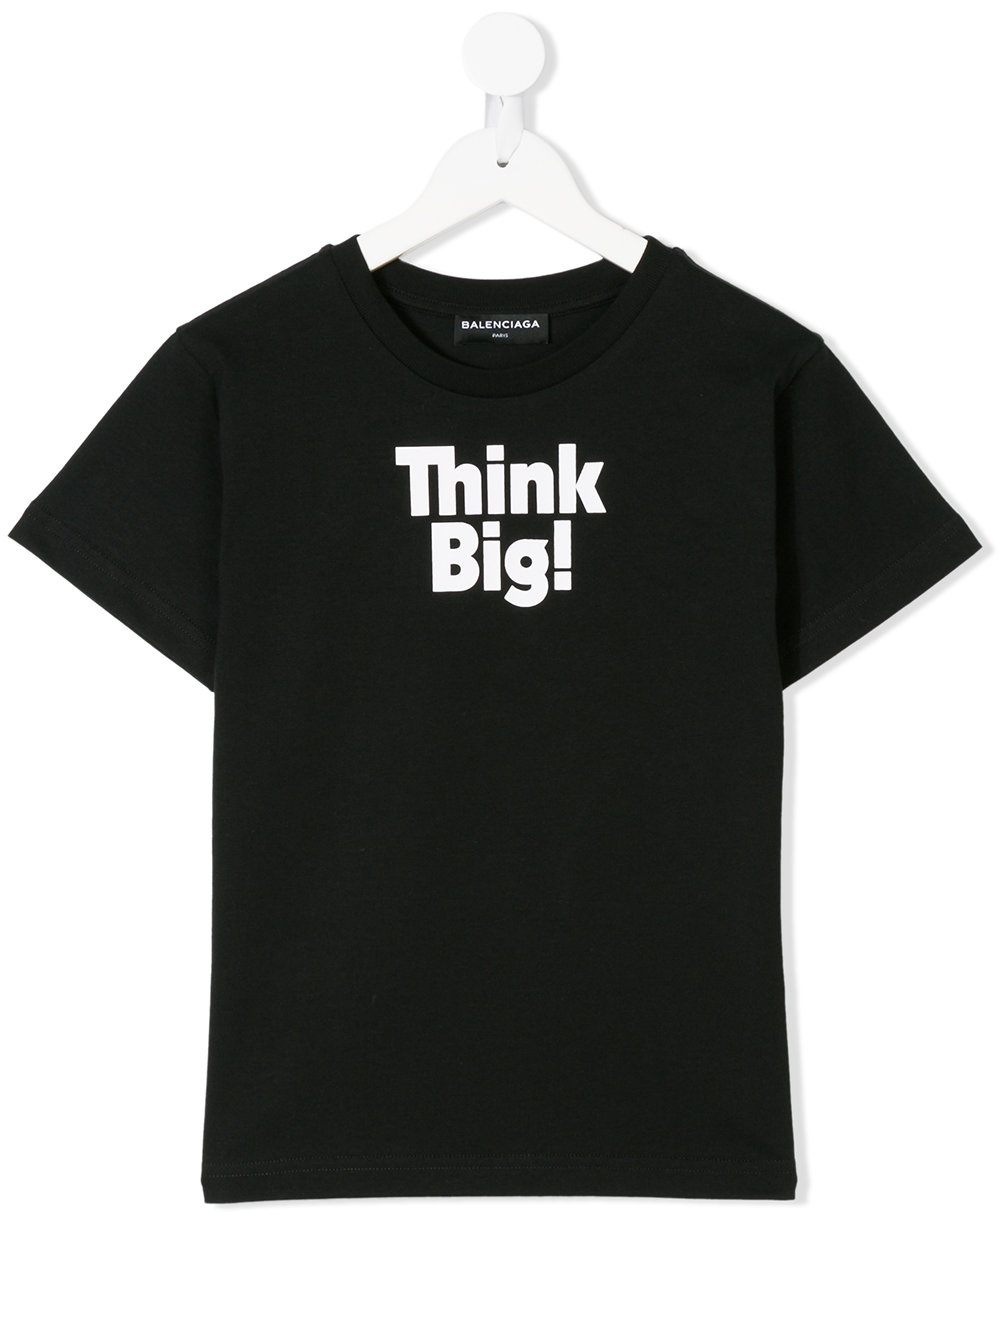 Balenciaga Kids Black 'Think Big' T-shirt